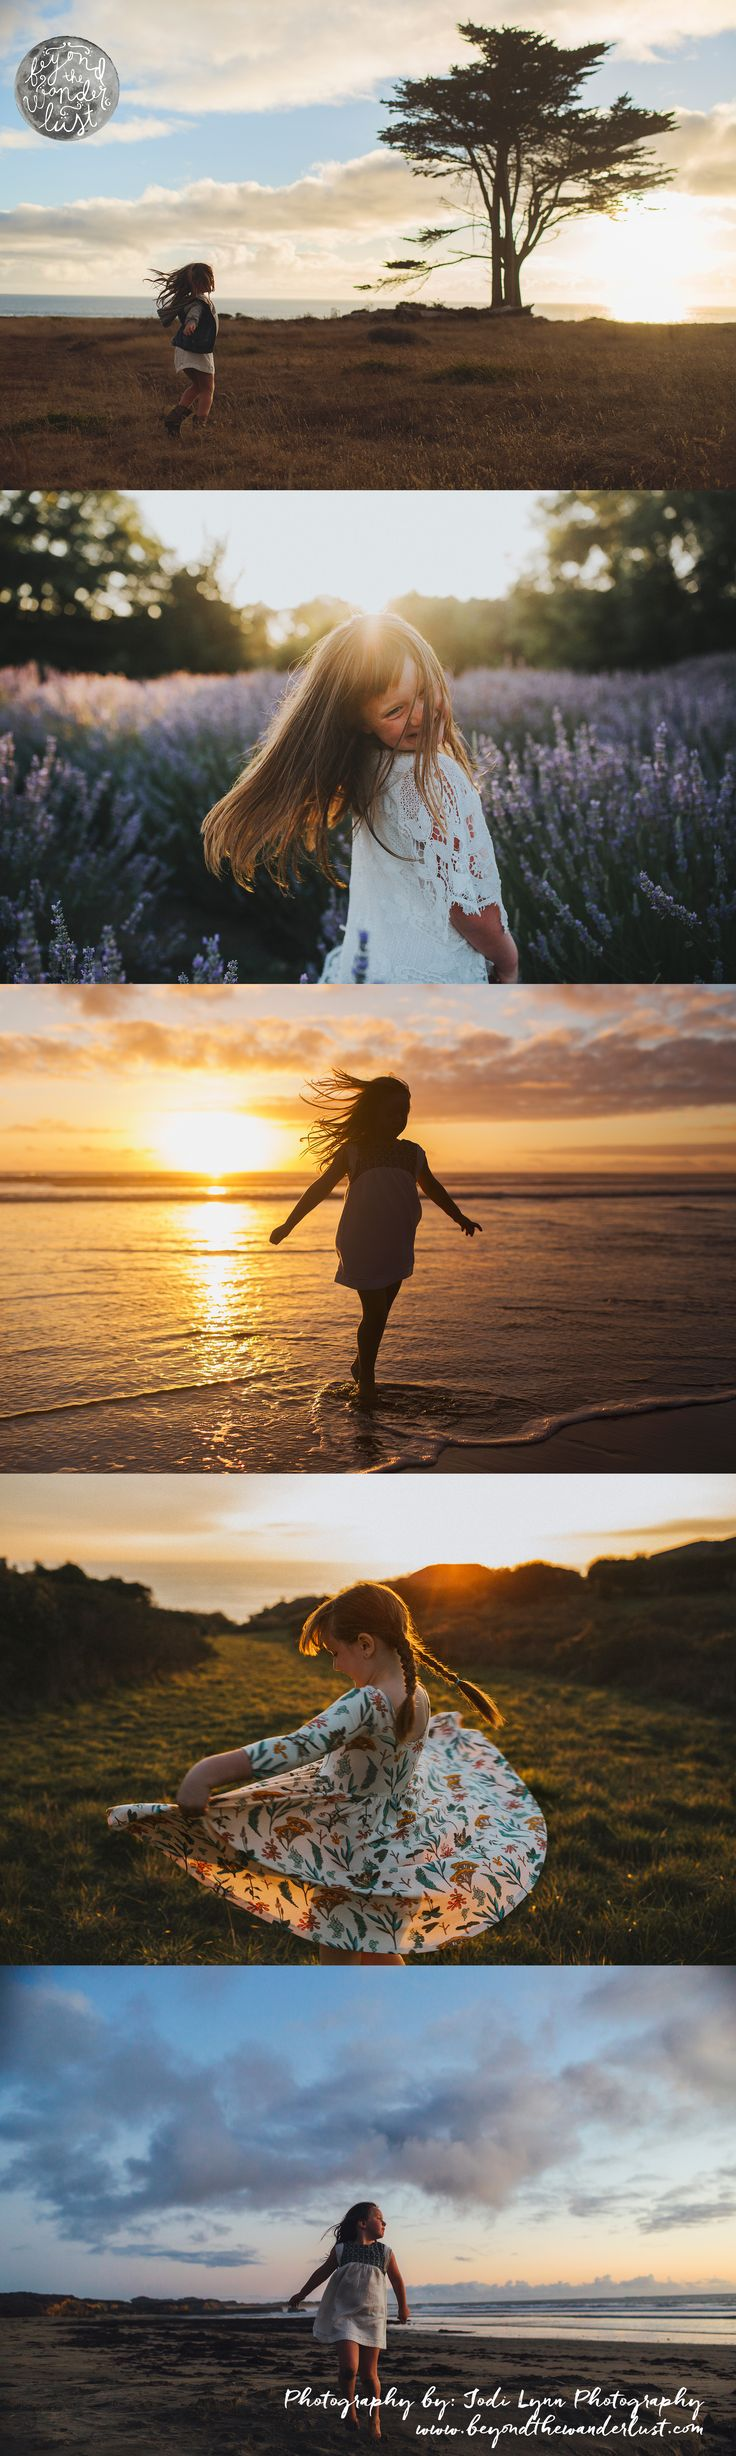 outdoor picture ideas >> documentary photography